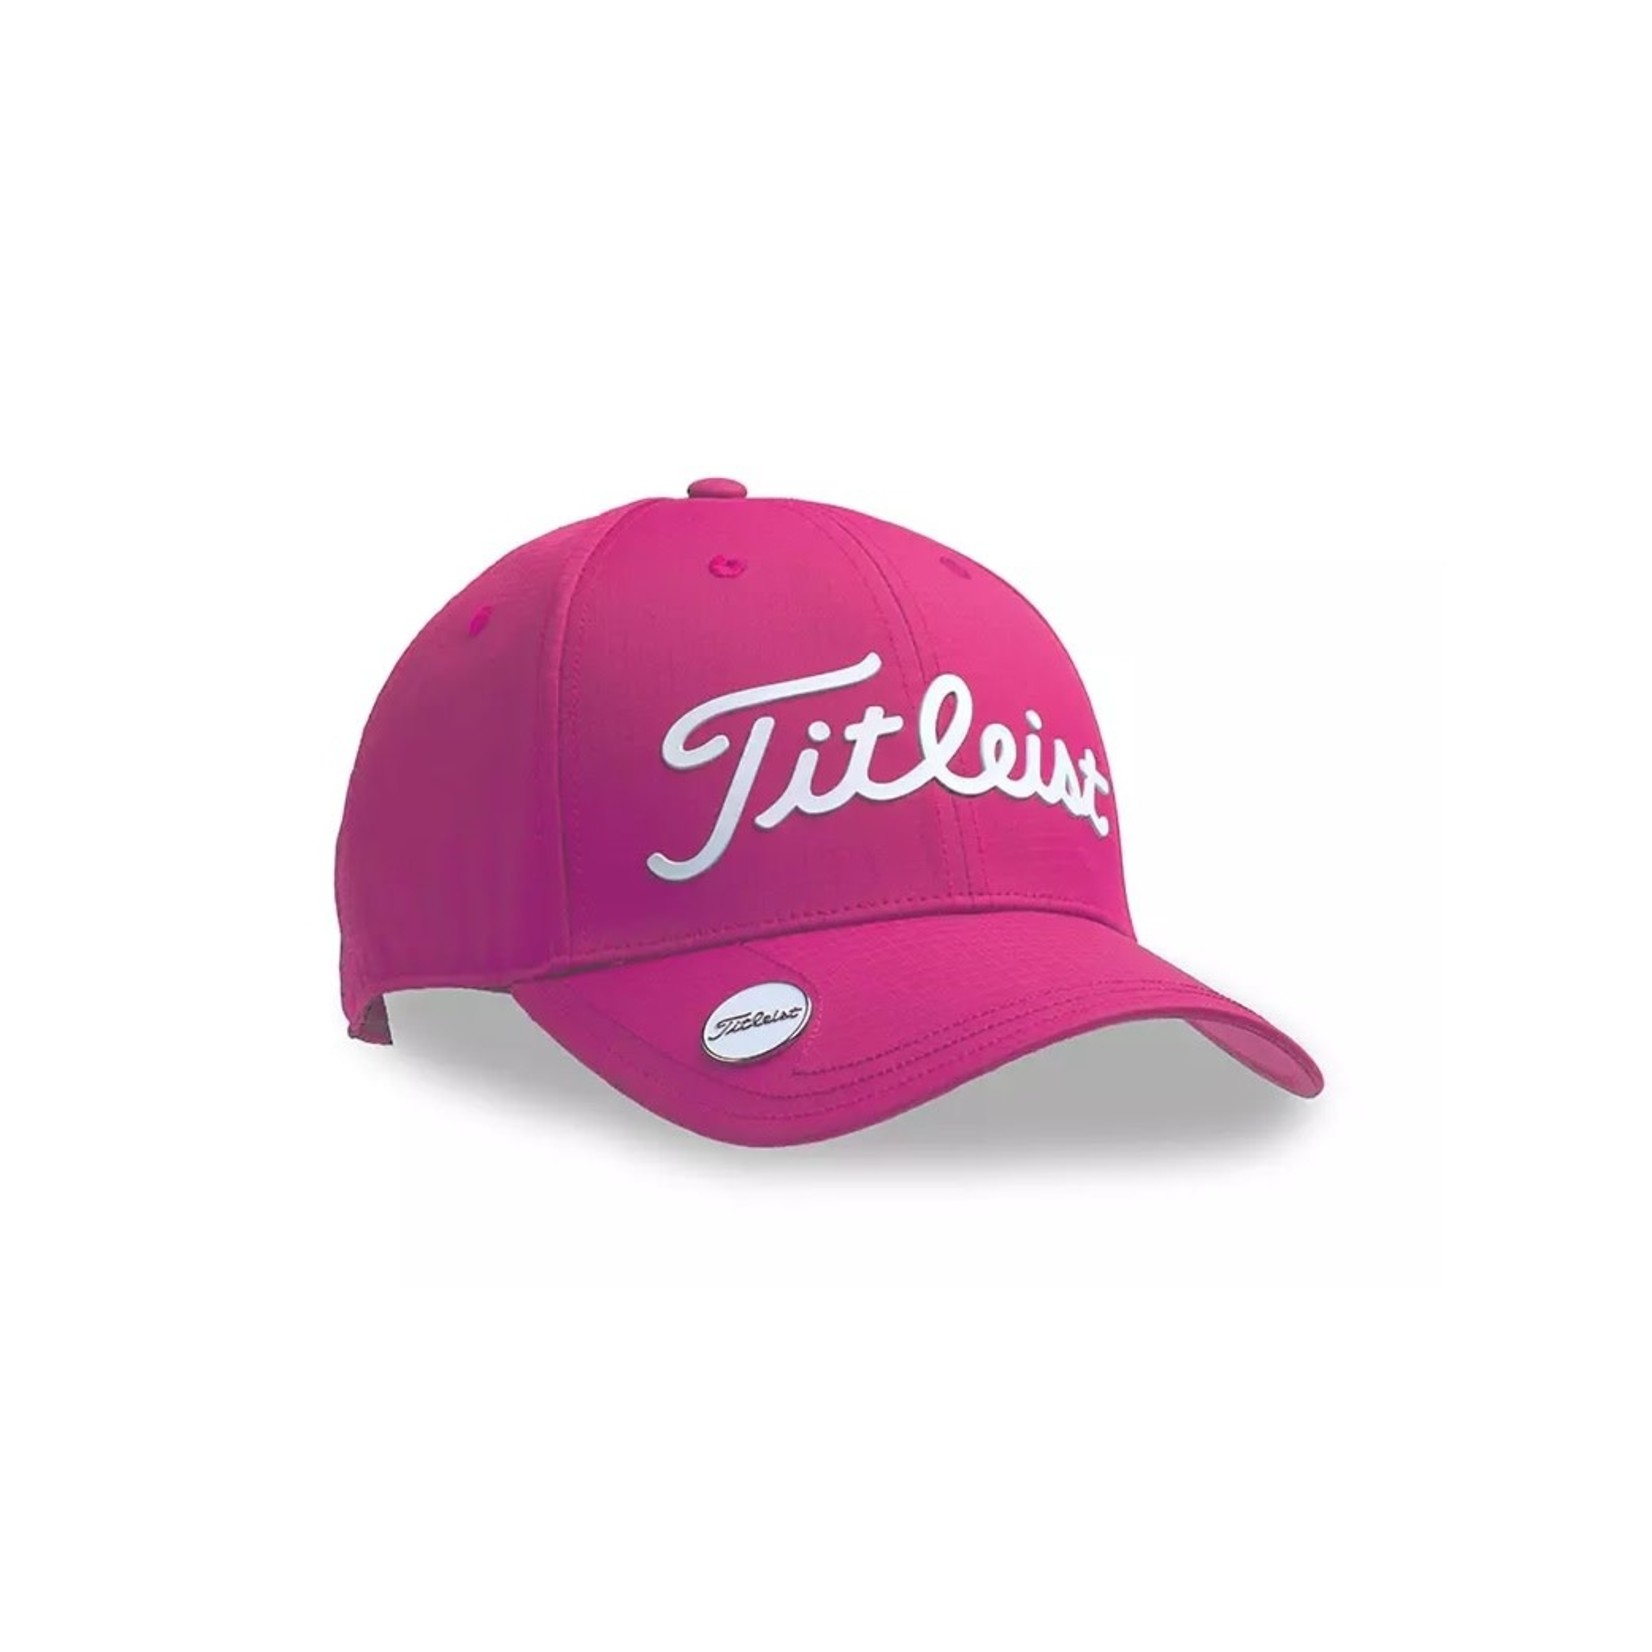 Titleist Titleist Performance Cap